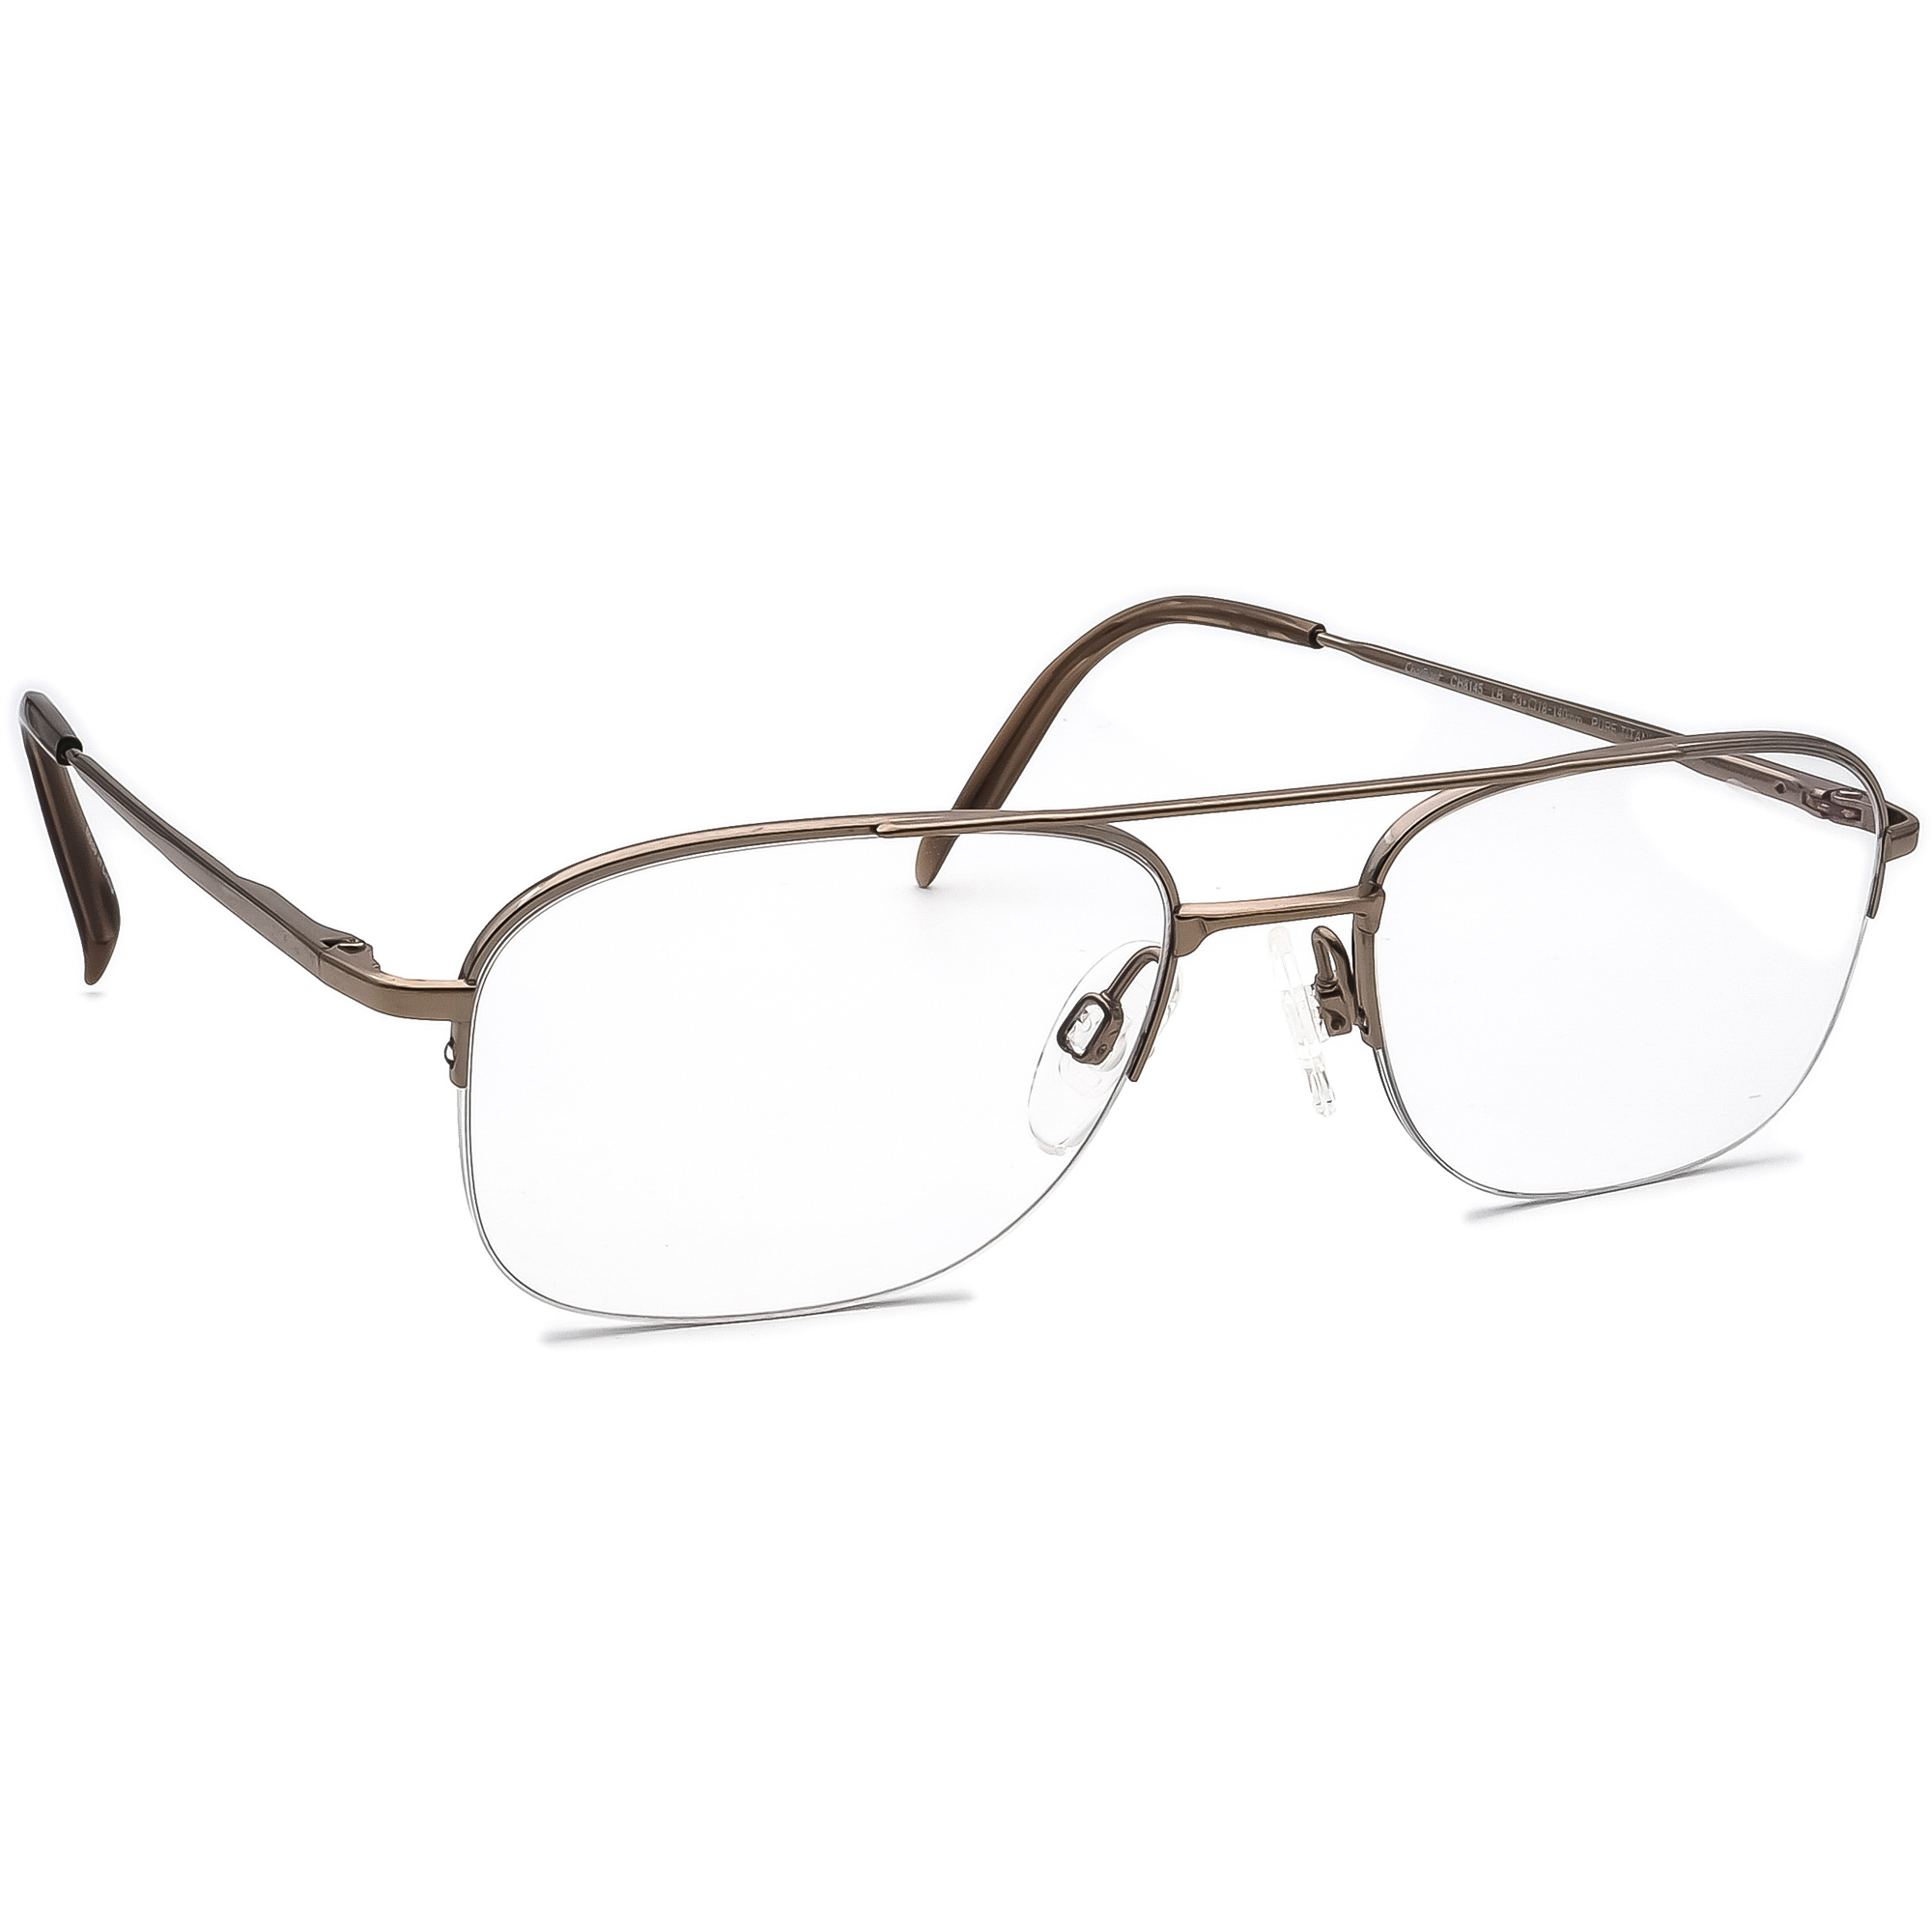 Charmant Eyeglasses CH8145 LB Pure Titanium Light Brown Half Rim 53[]18 140